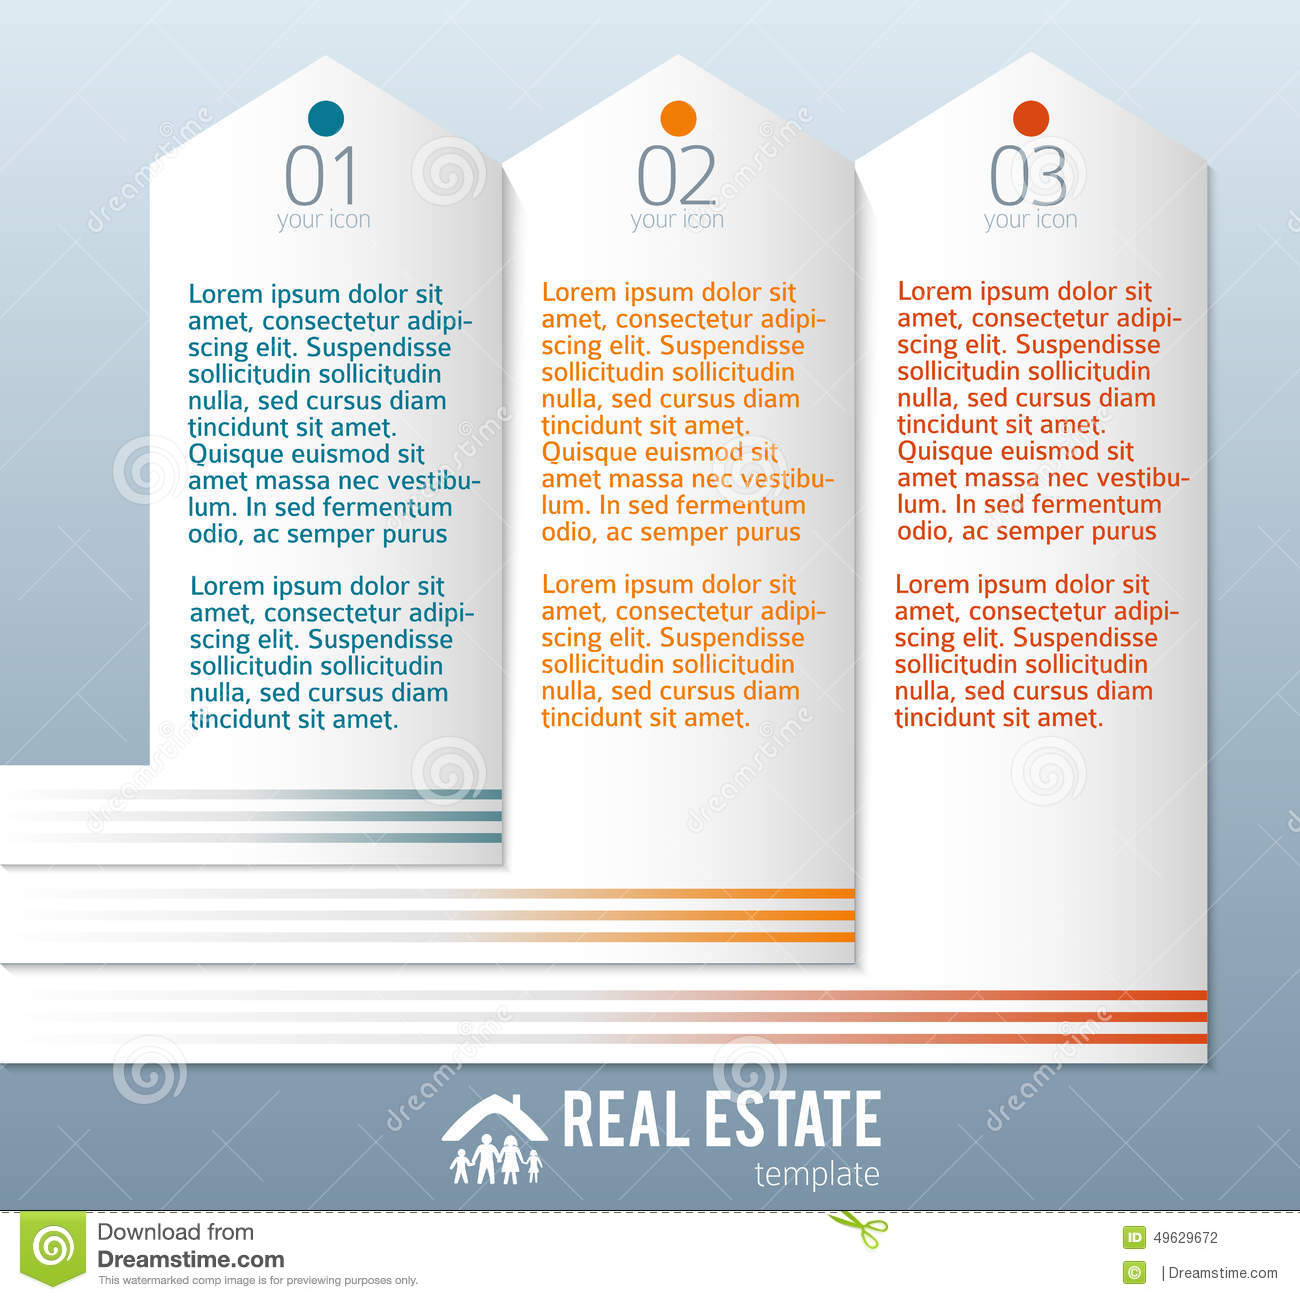 real estate agency ad template stock vector image 49629672 real estate agency ad template